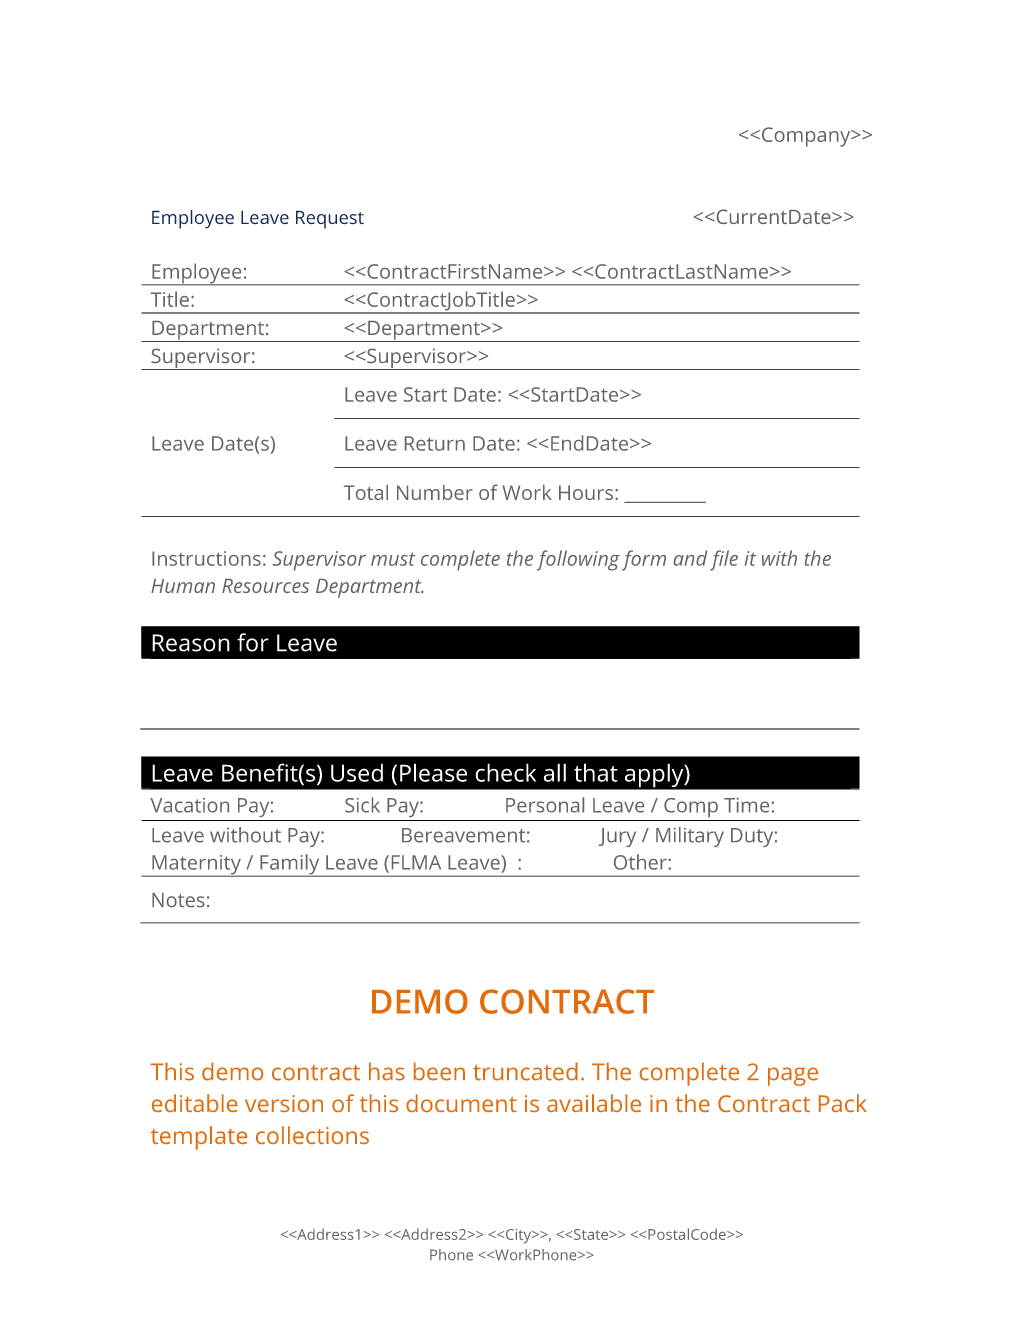 Employee Leave Request Form - Use the Employee Leave Request Form to ...